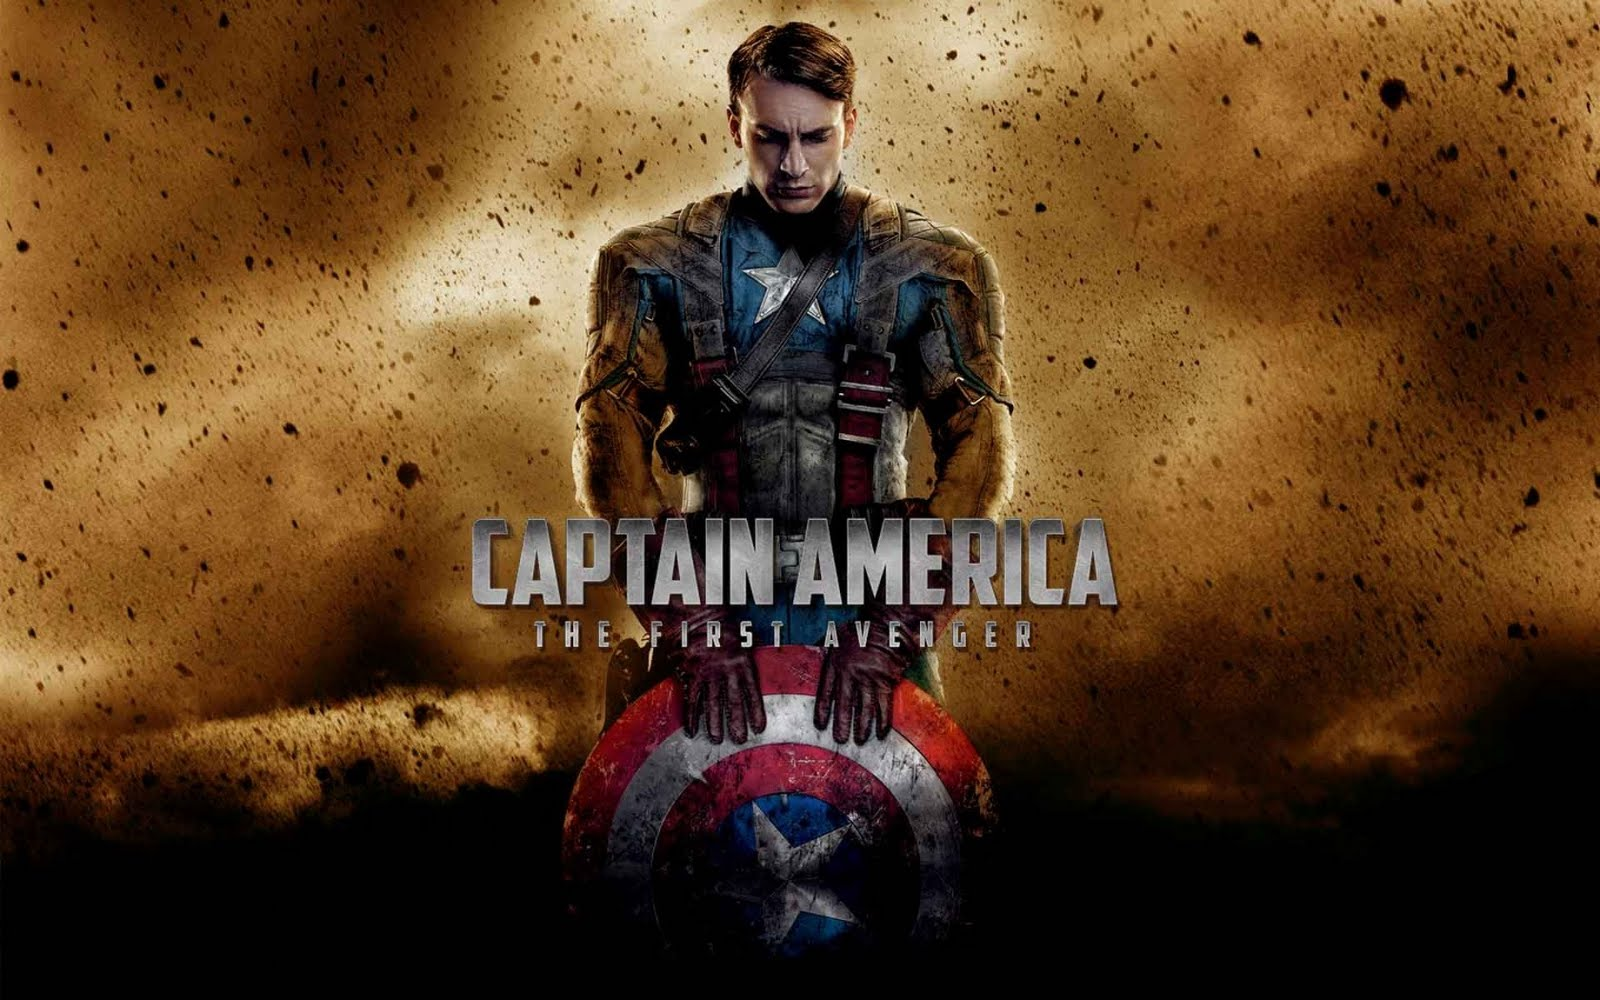 Captain America First Avenger Movie Poster 02 Photo Galore